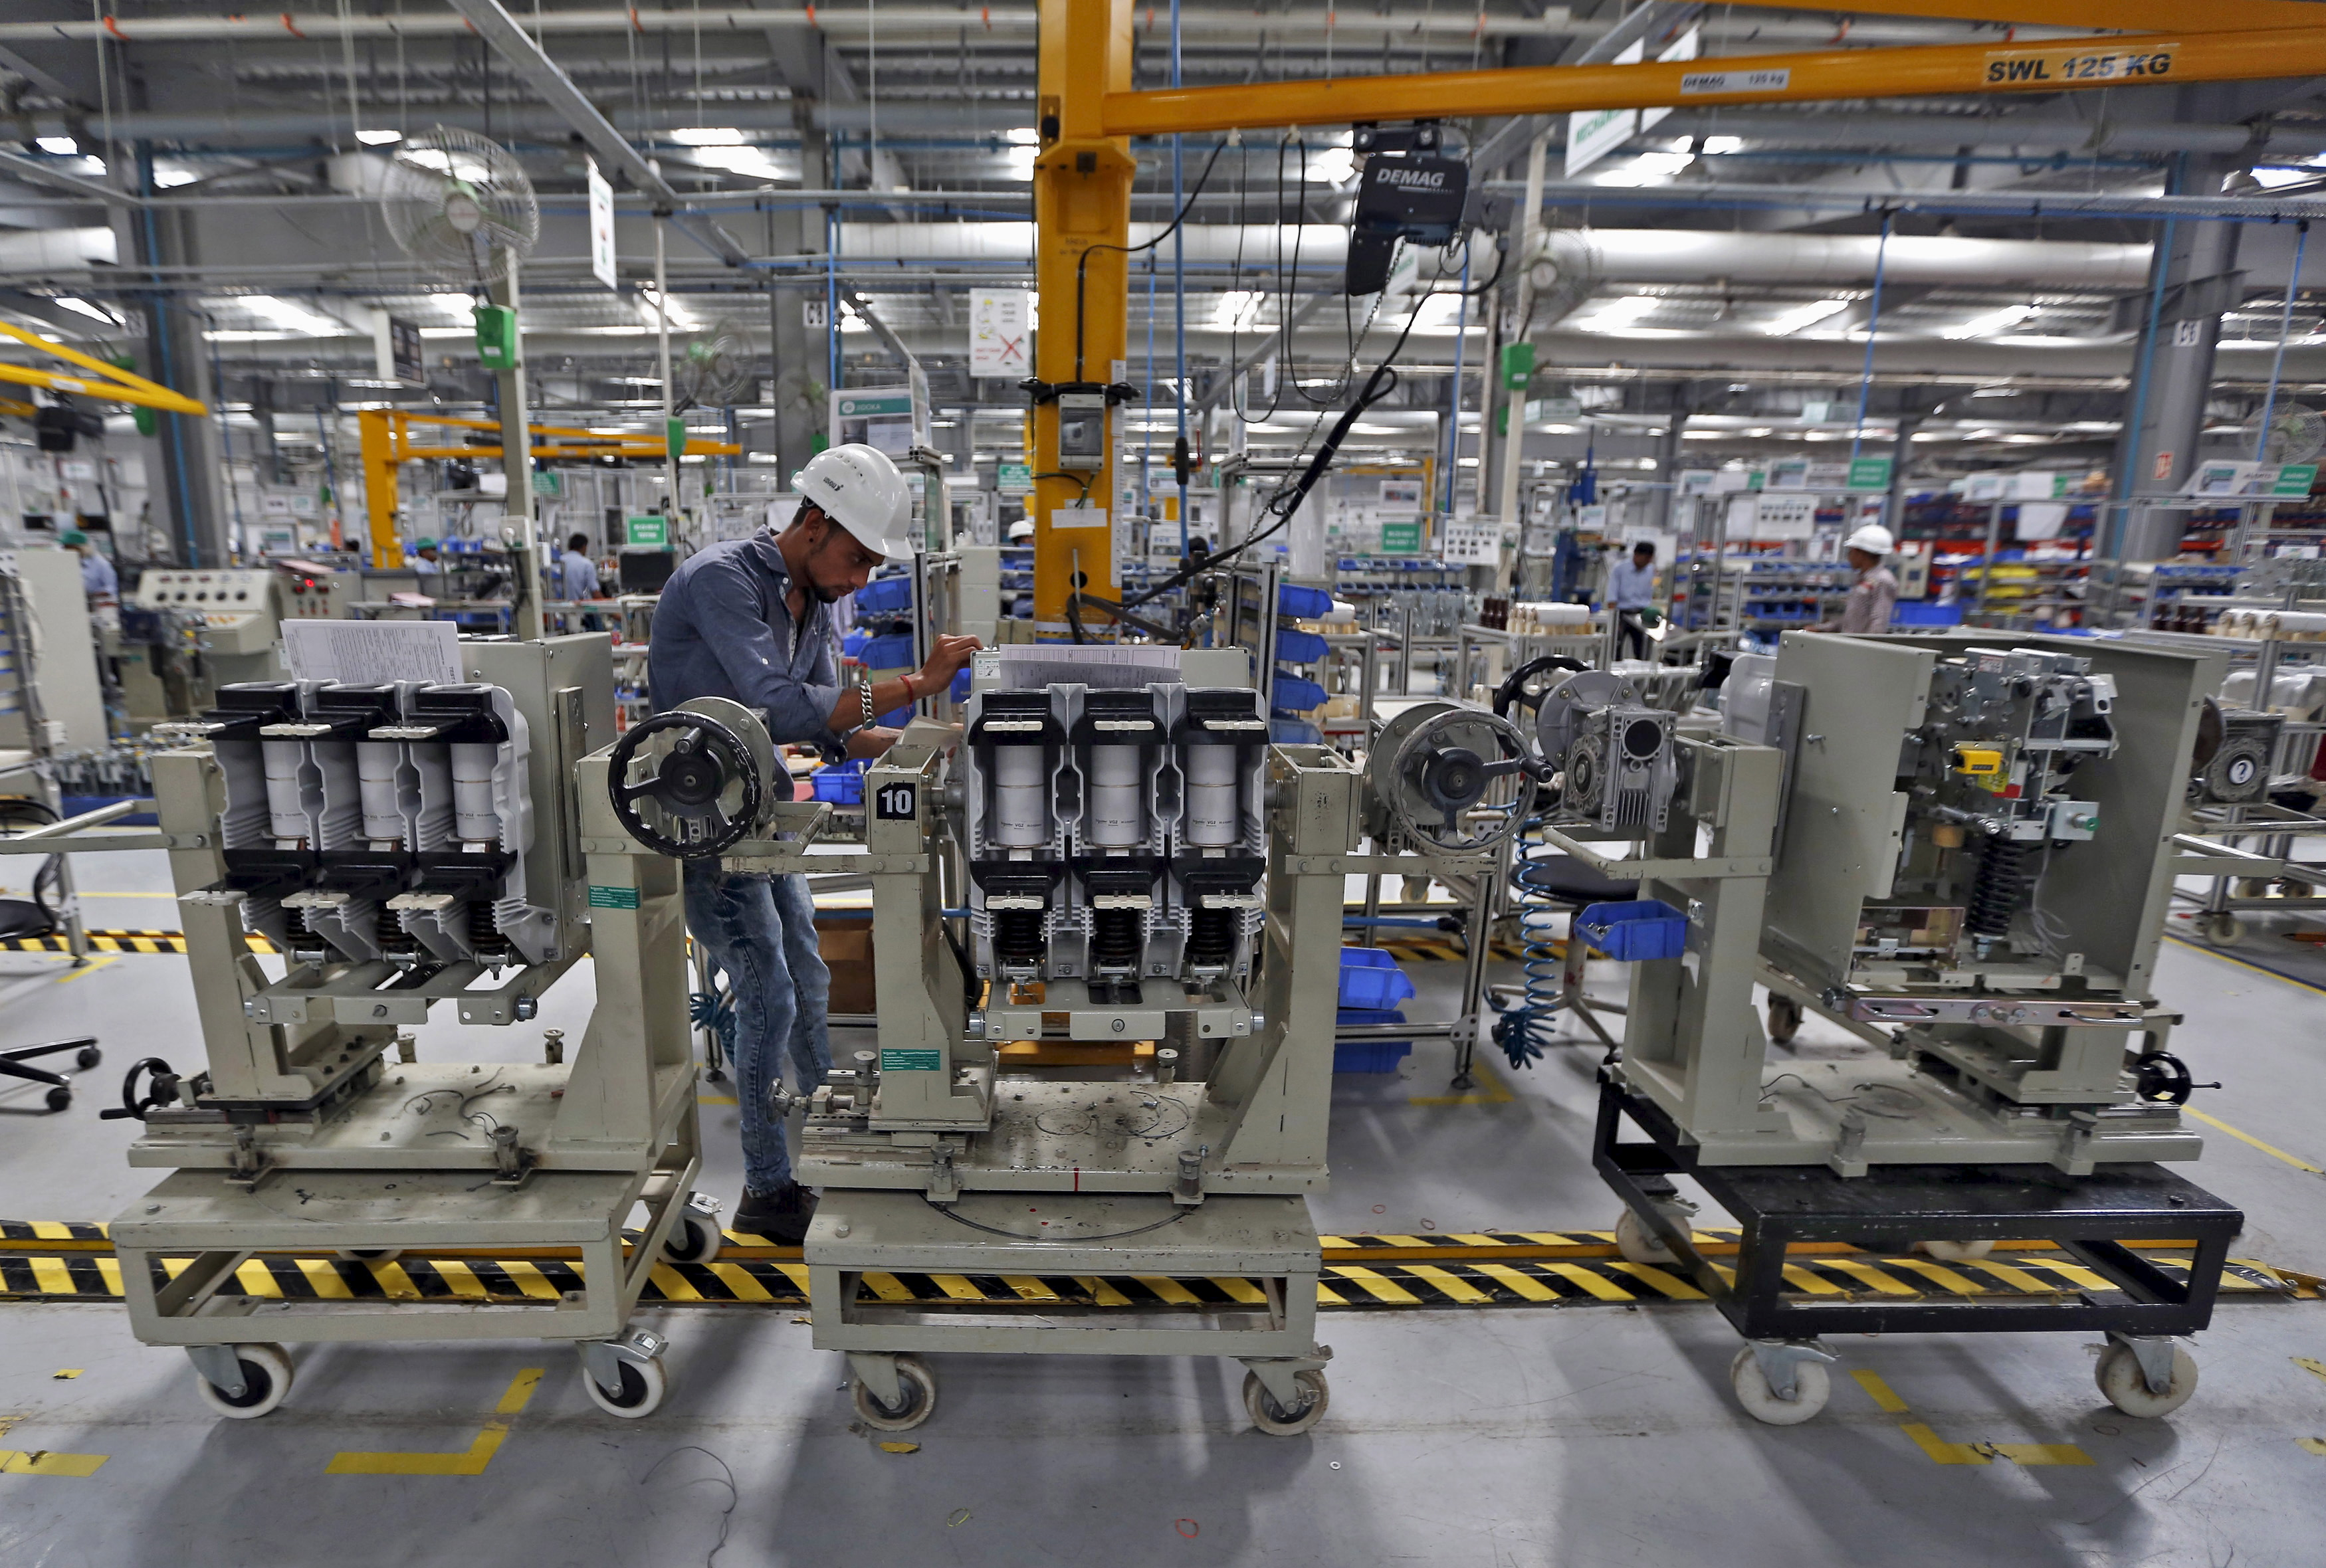 An employee assembles medium voltage switchgears inside the plant of Schneider Electric Infrastructure Ltd. on the outskirts of Vadodara in Gujarat